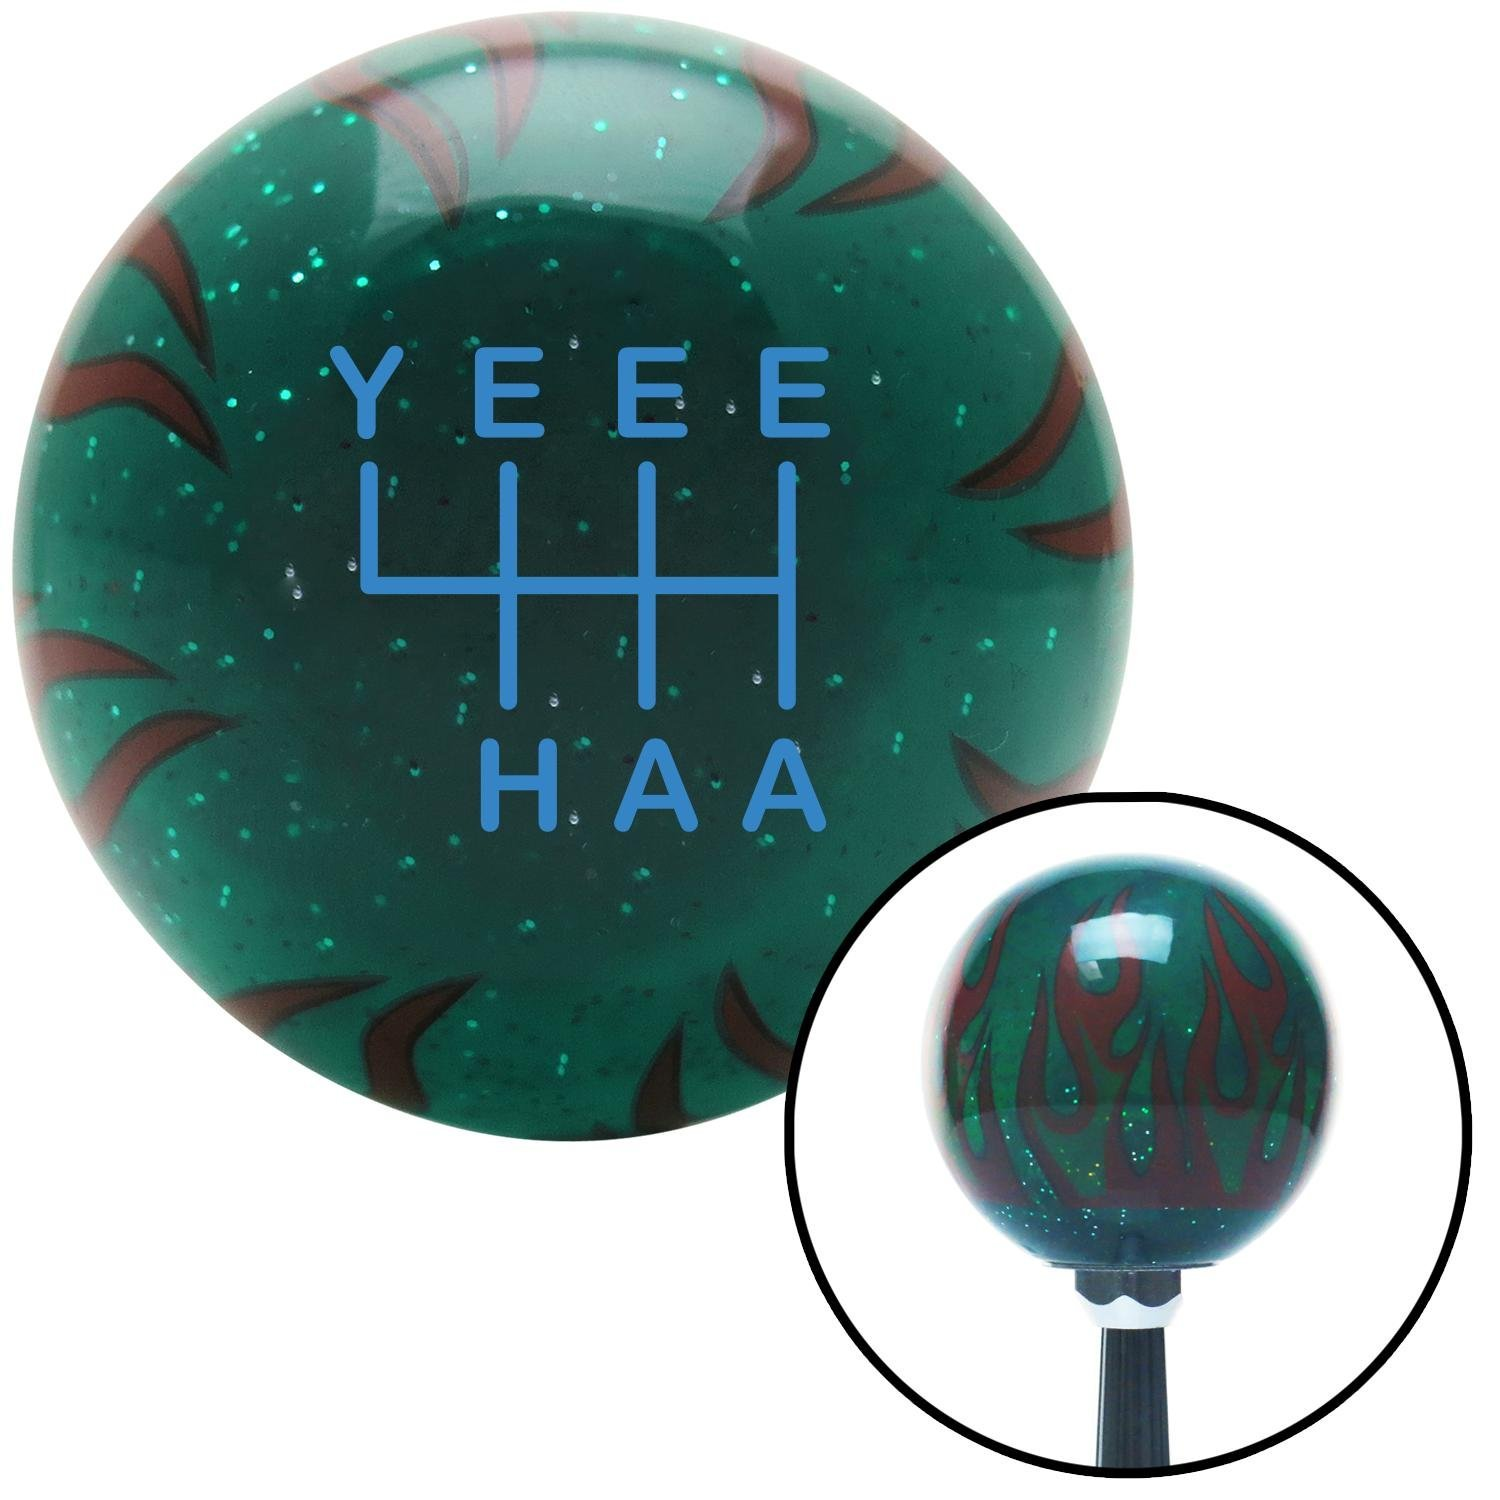 American Shifter 302361 Shift Knob Blue YeeeHaa 6 Speed Green Flame Metal Flake